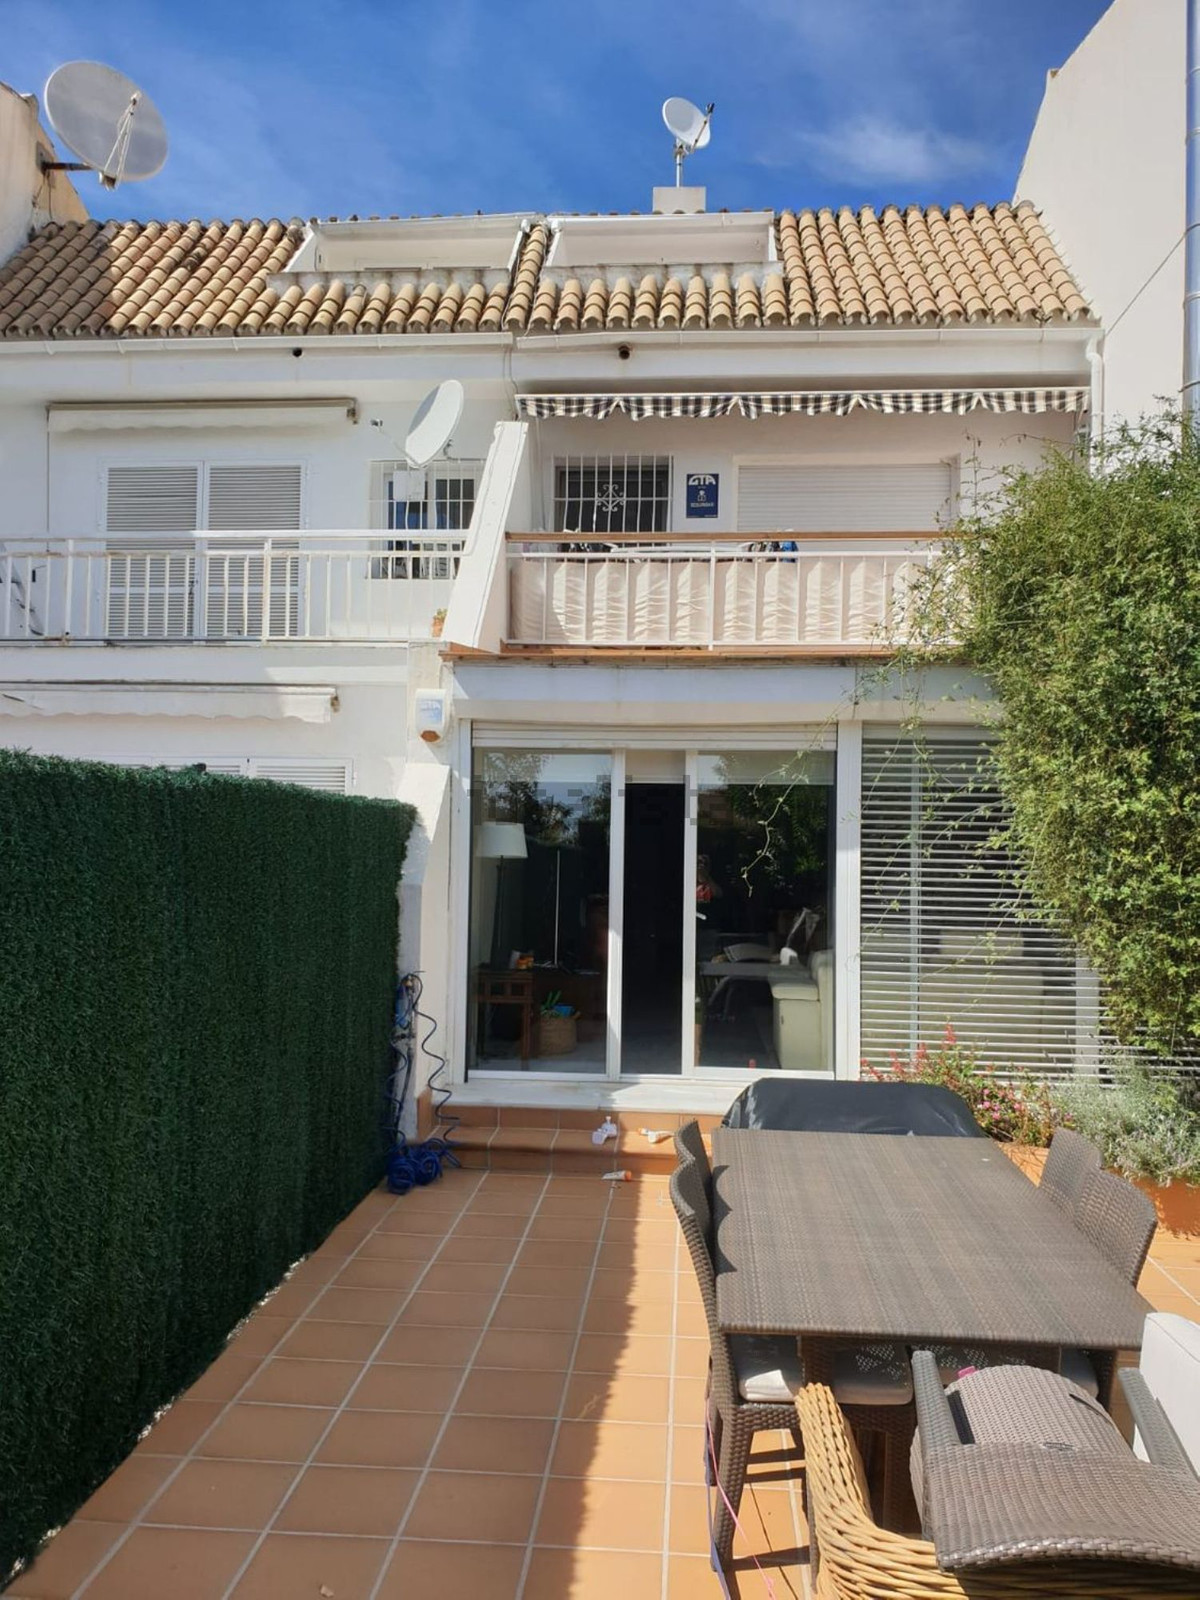 Rented but can be sold as well  A nice 4 bedroom townhouse in the lovely urbanization of Jardines de,Spain